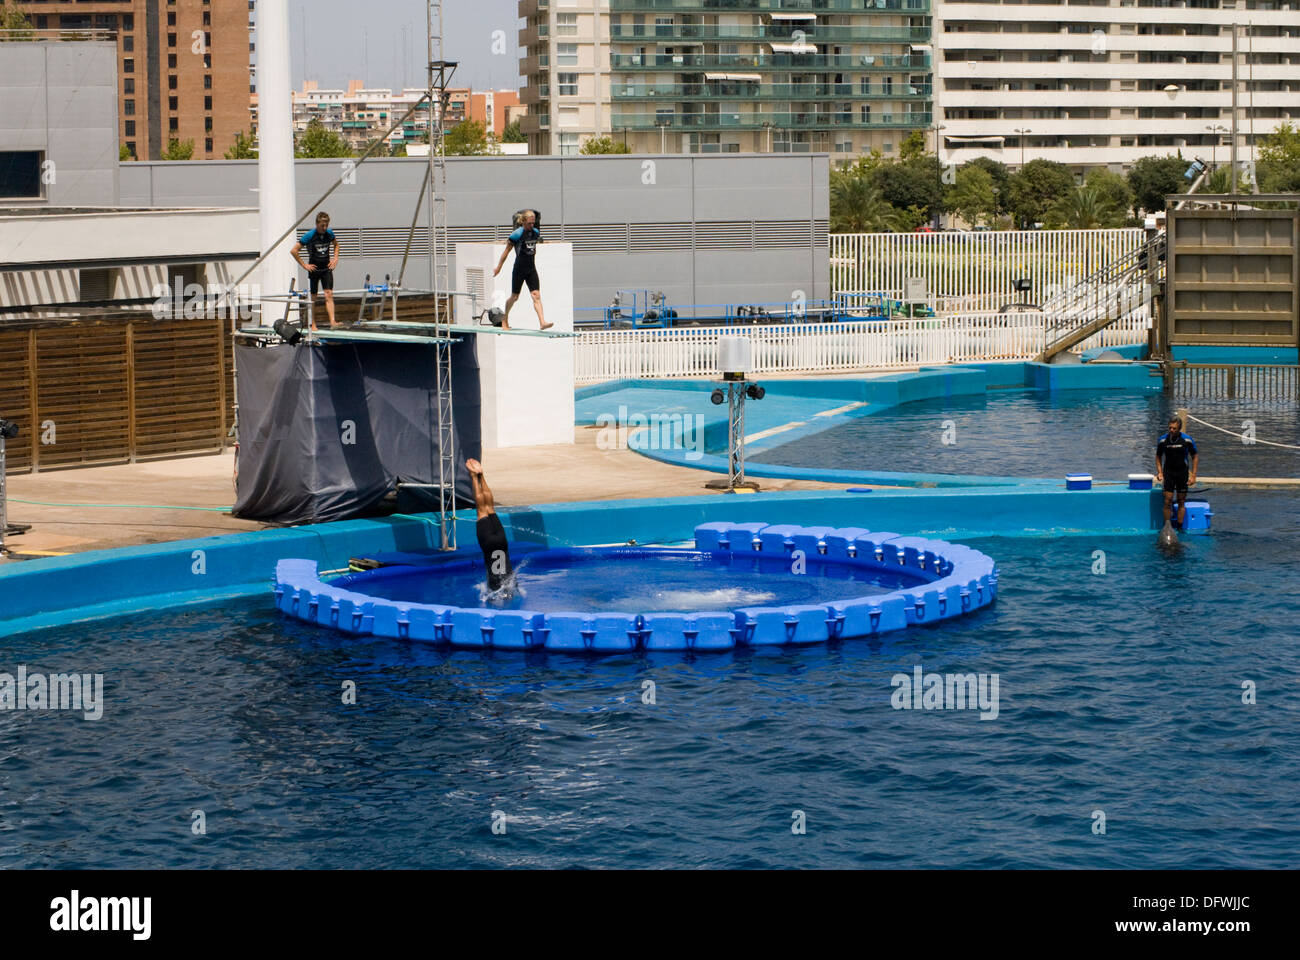 exhibition at the Dolphinarium where acrobats mix risky acrobatics with the Common Bottlenose Dolphins show. - Stock Image